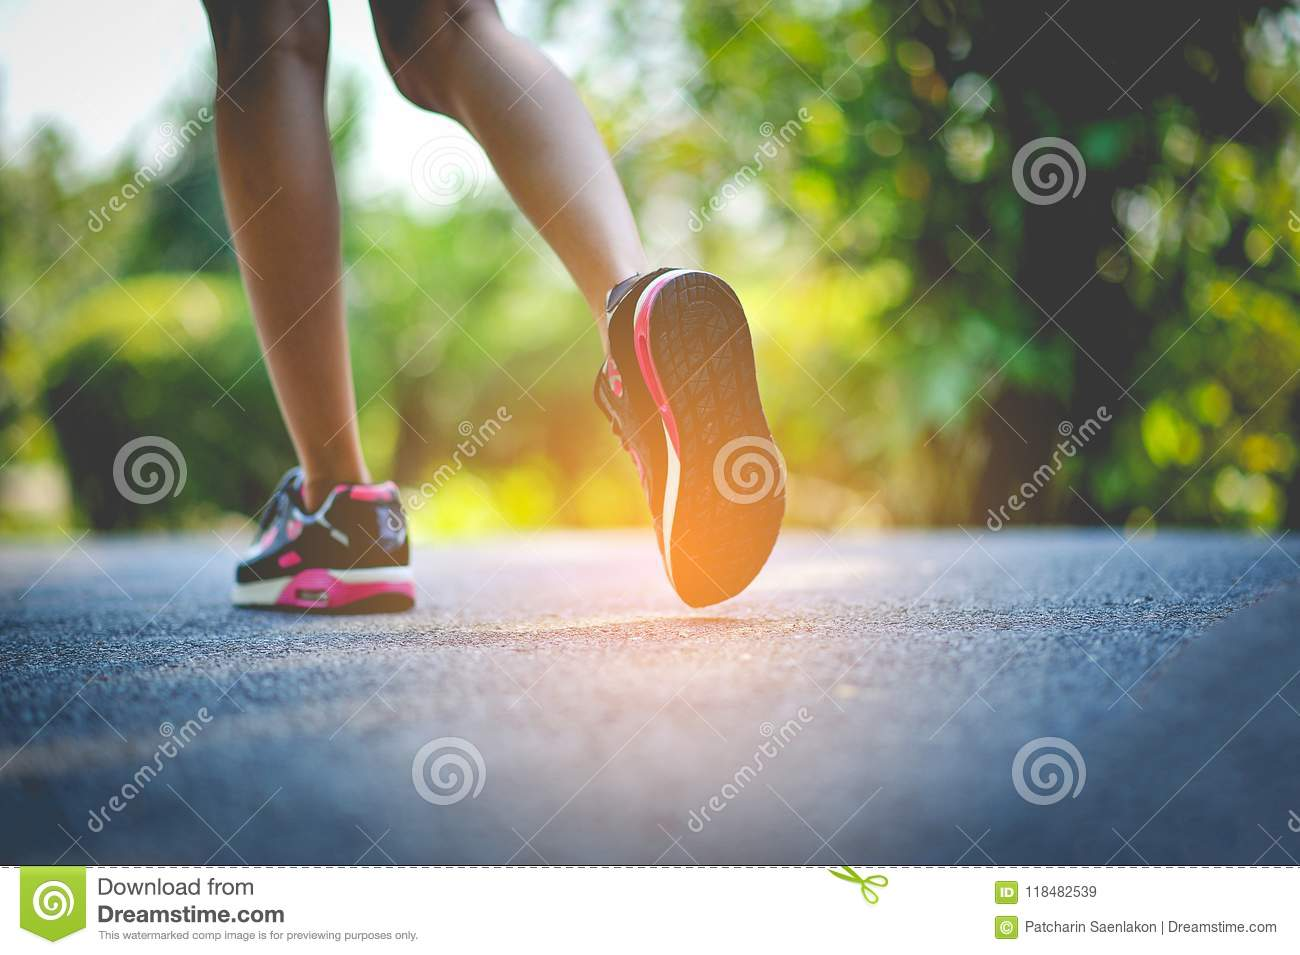 Jogging with sports shoes on holiday For health and beauty. And fat reduction.